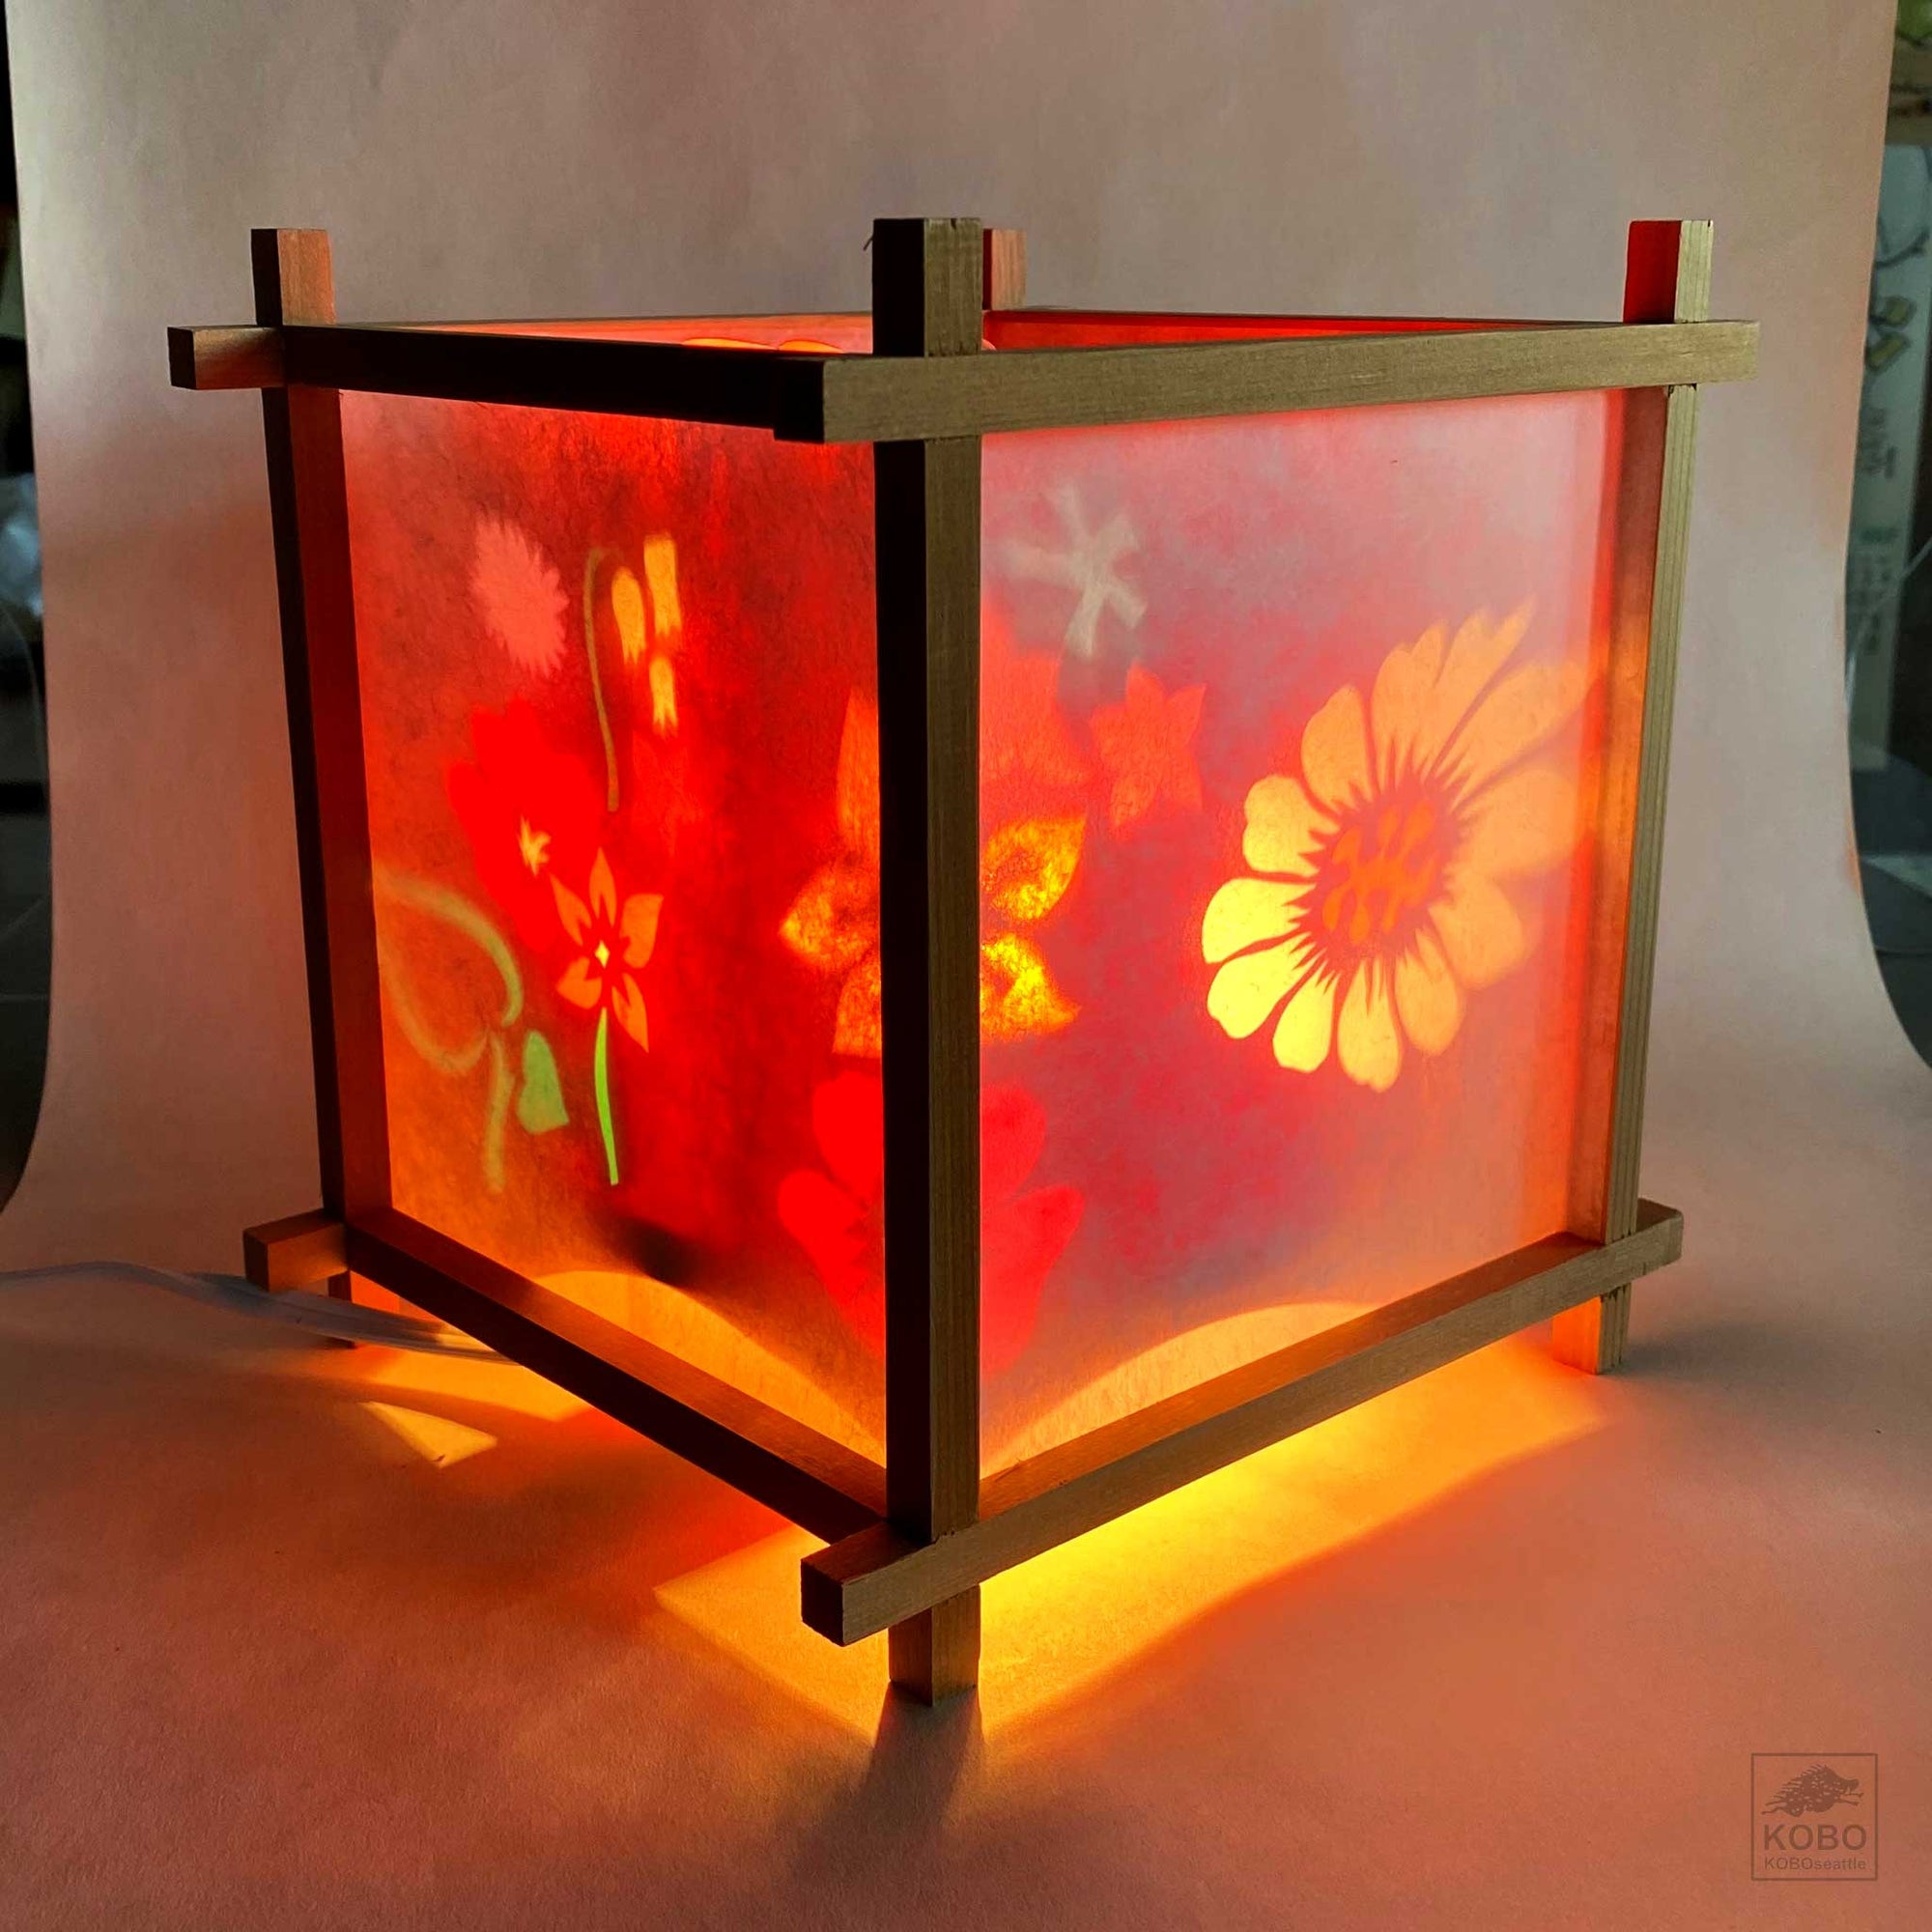 Japanese Turning Lantern - Flowers